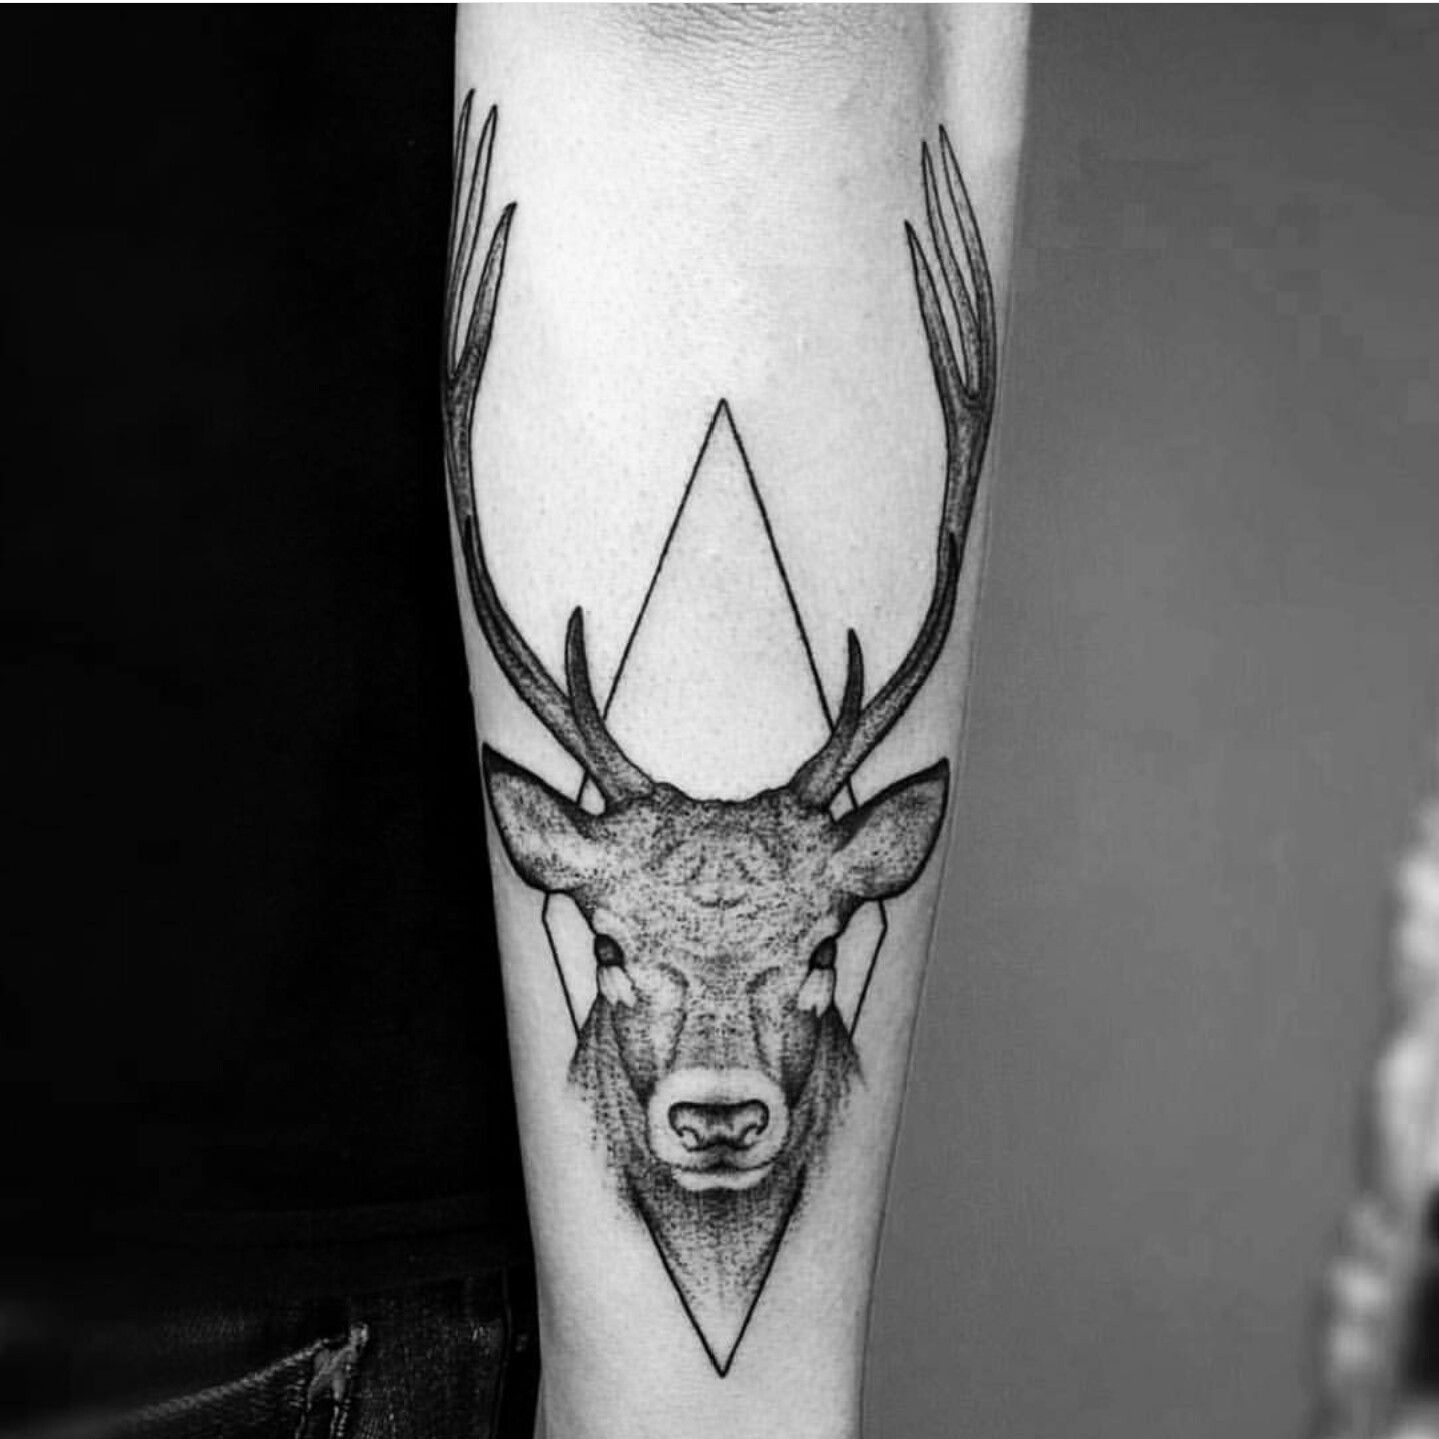 40 Best Deer Tattoo Designs Ideas And Meanings